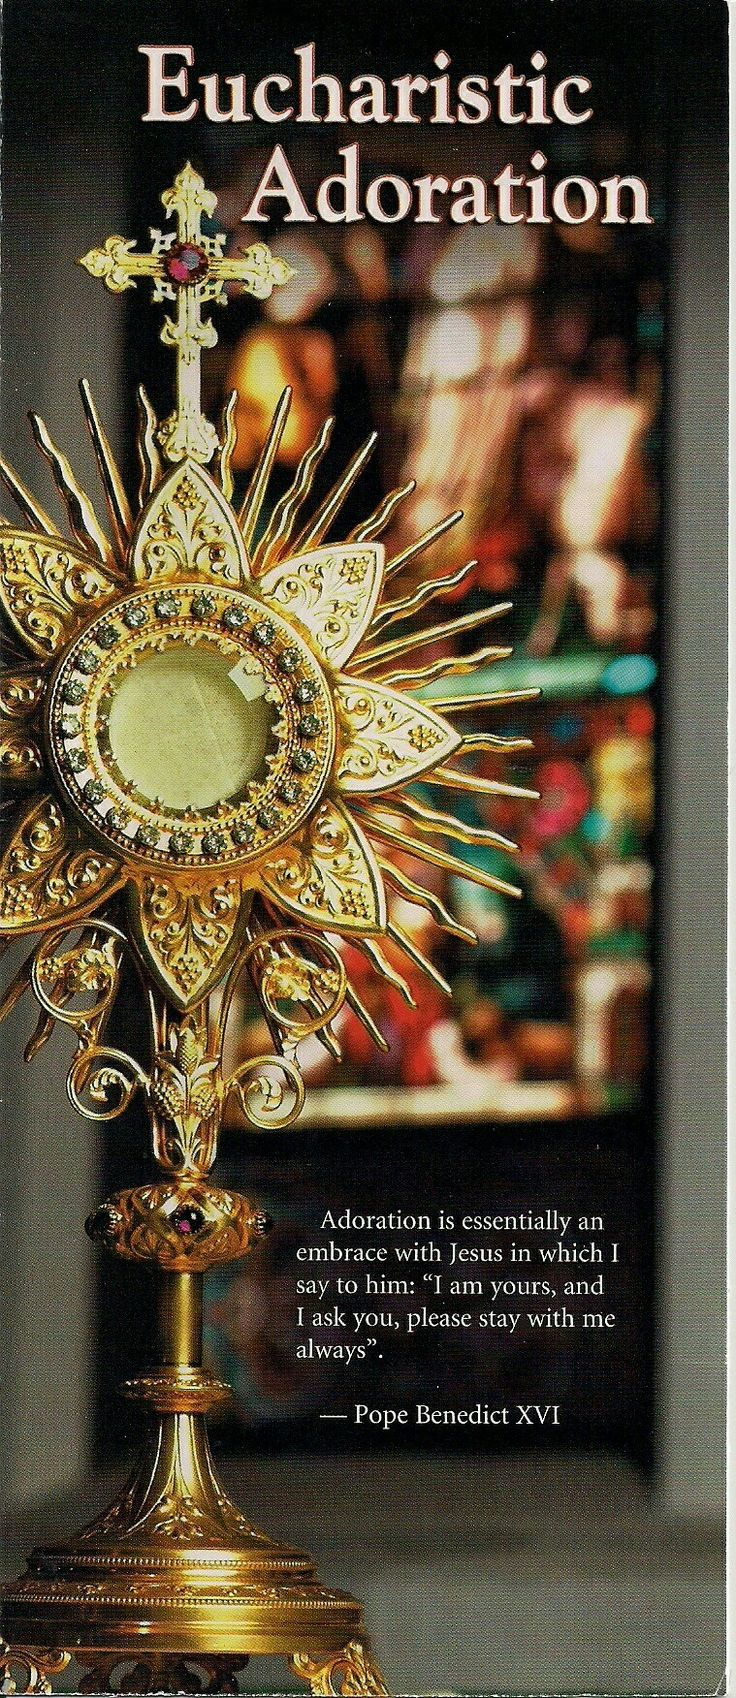 "~Adoration is essentially an embrace with Jesus in which I say to Him, ""I am yours and I ask You, please stay with me always."" - Pope Benedict XVI"